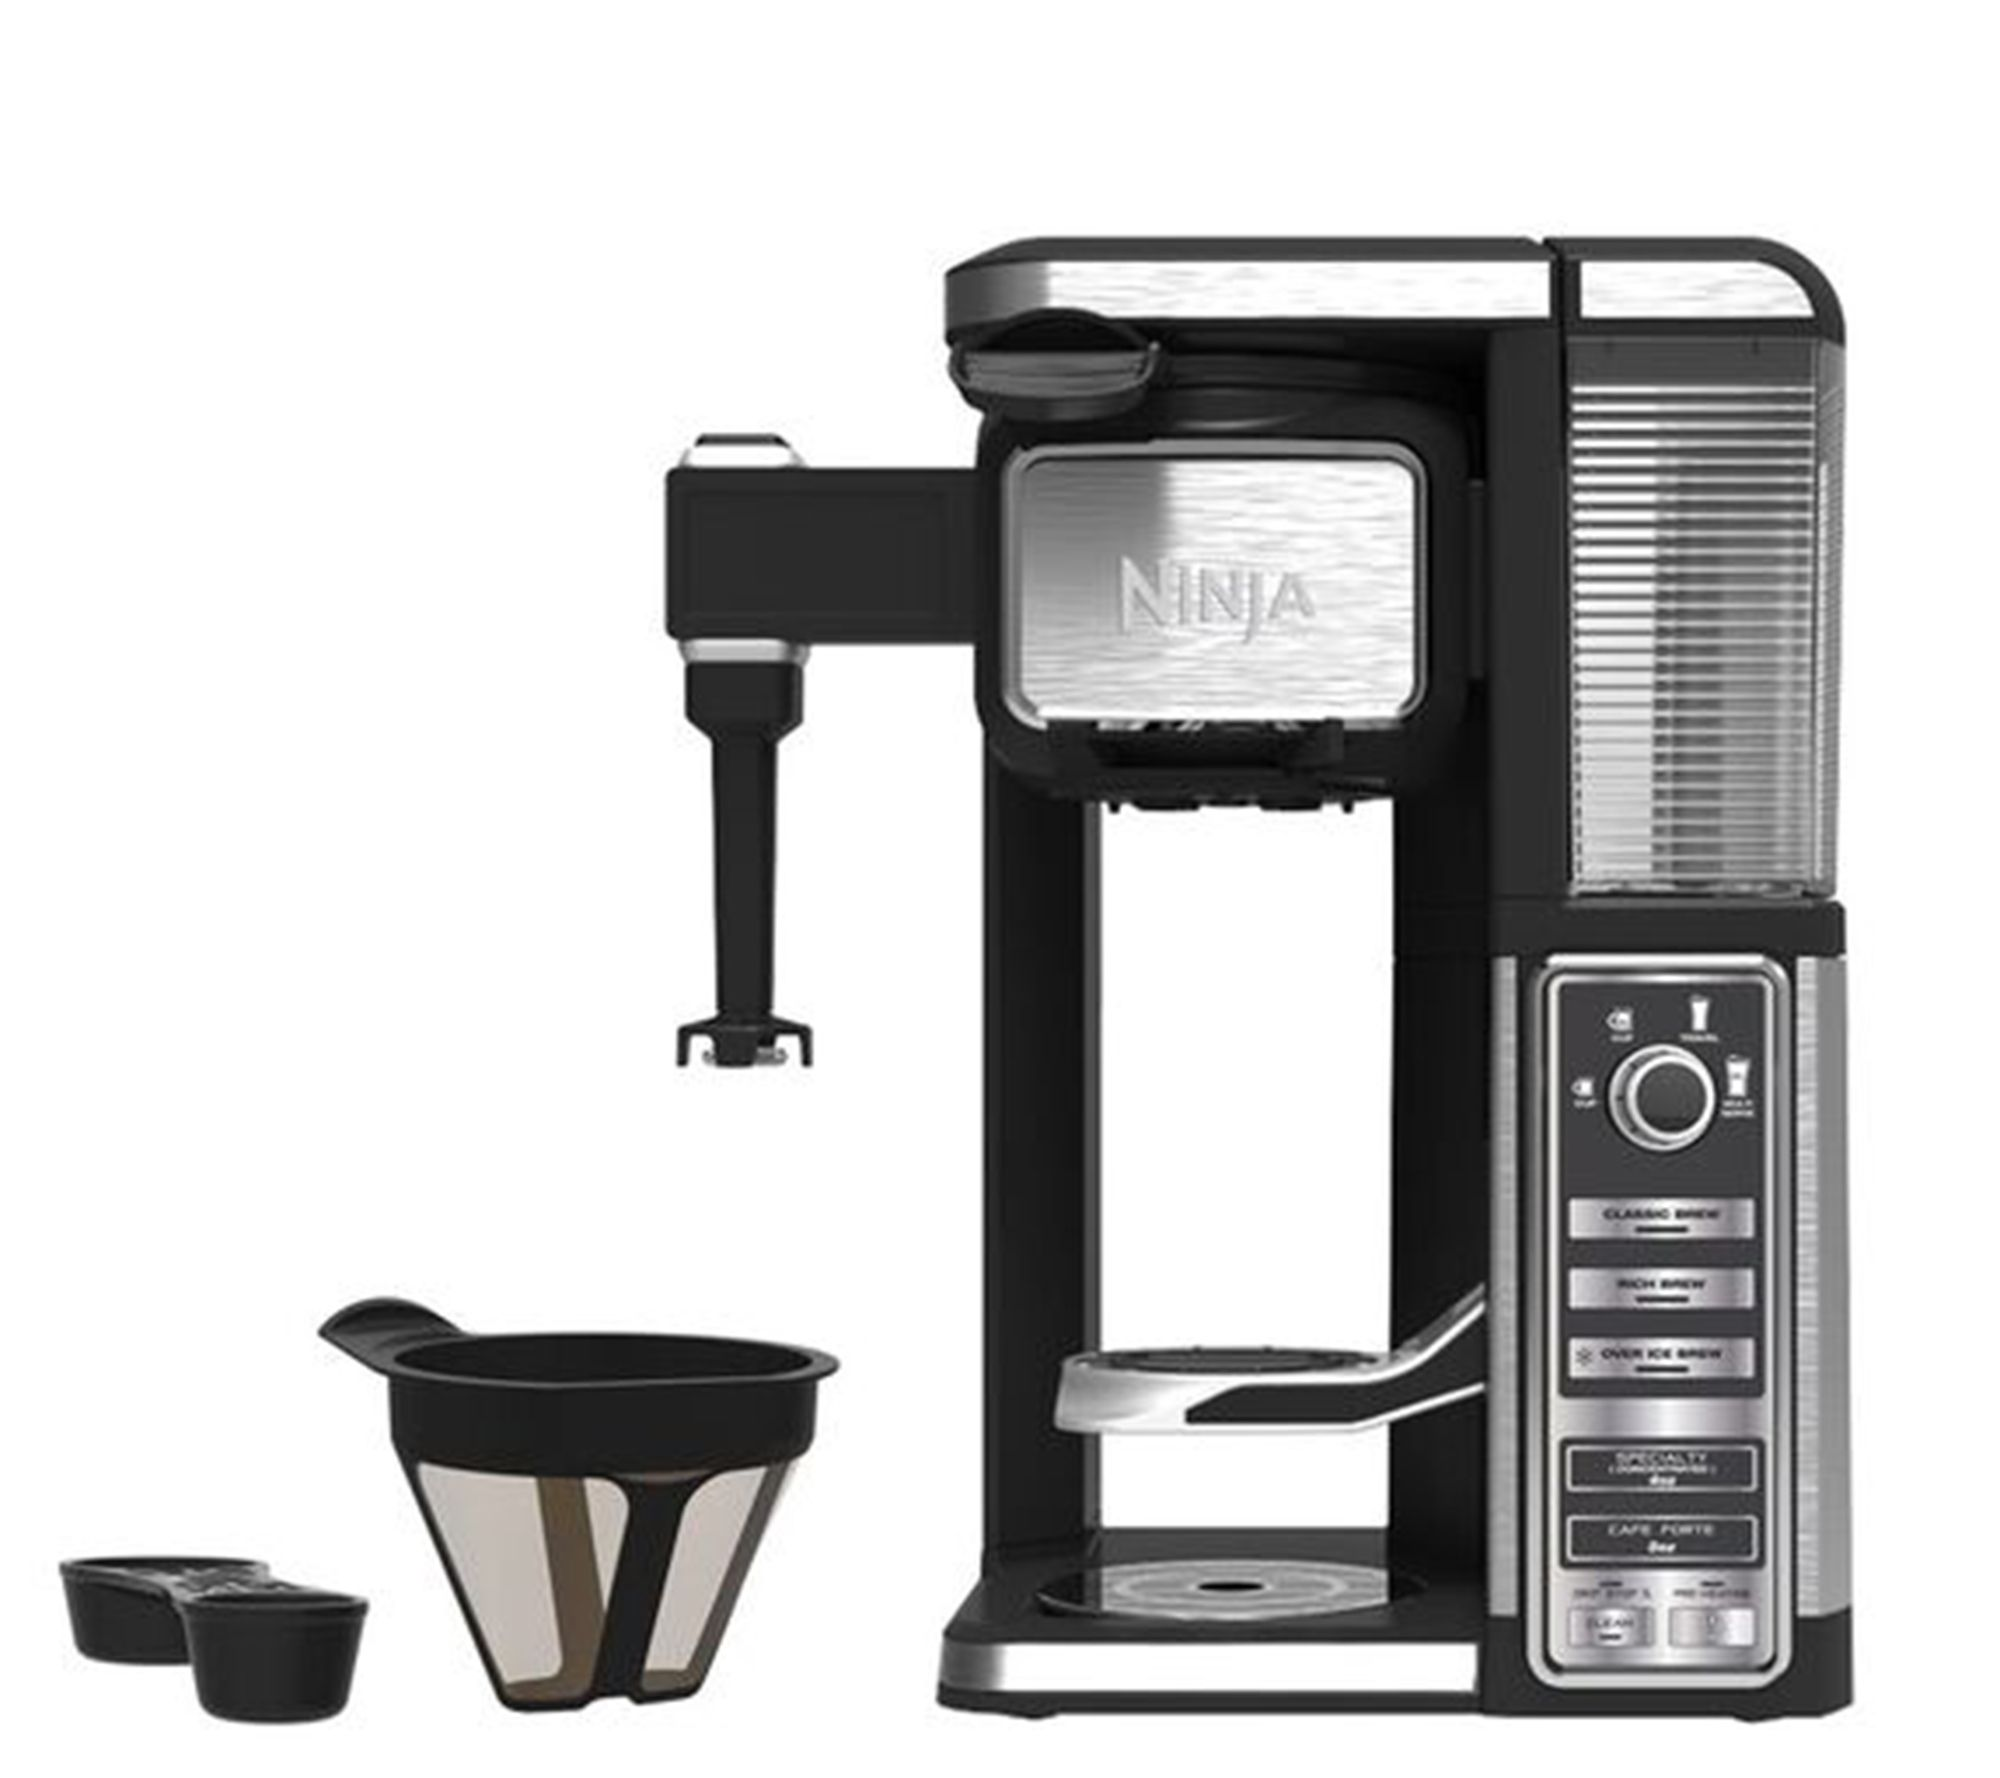 Uncategorized Qvc Kitchen Appliances ninja small appliances kitchen food qvc com single serve coffee bar with built in frother k305816